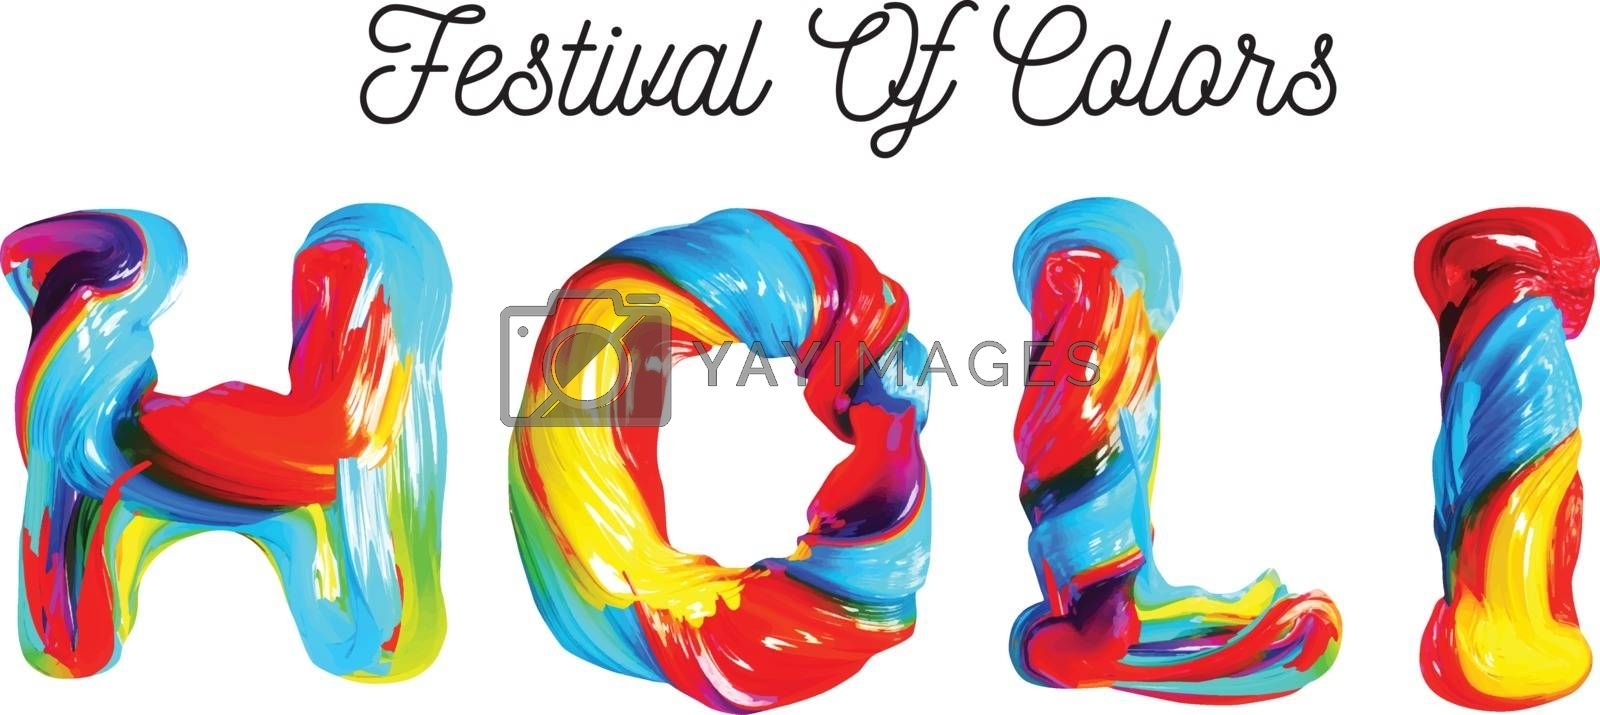 Colorful 3d text holi. Holiday of colors in India. Vector illustration on white background